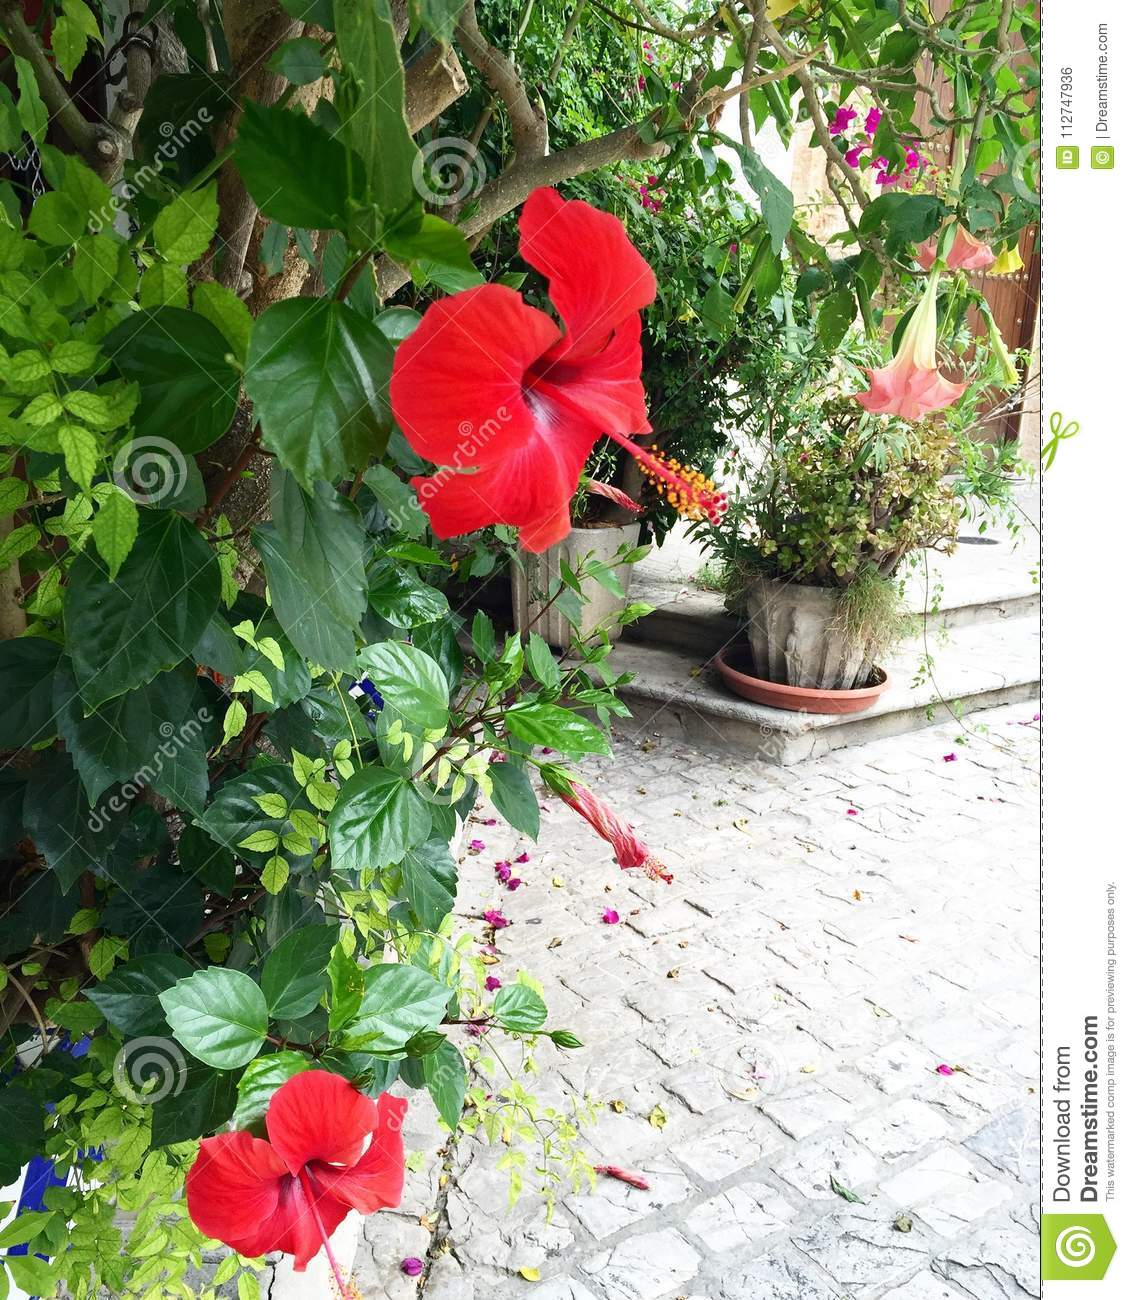 Flowers bloom on spring red flowers and nature style stock photo download flowers bloom on spring red flowers and nature style stock photo image of mightylinksfo